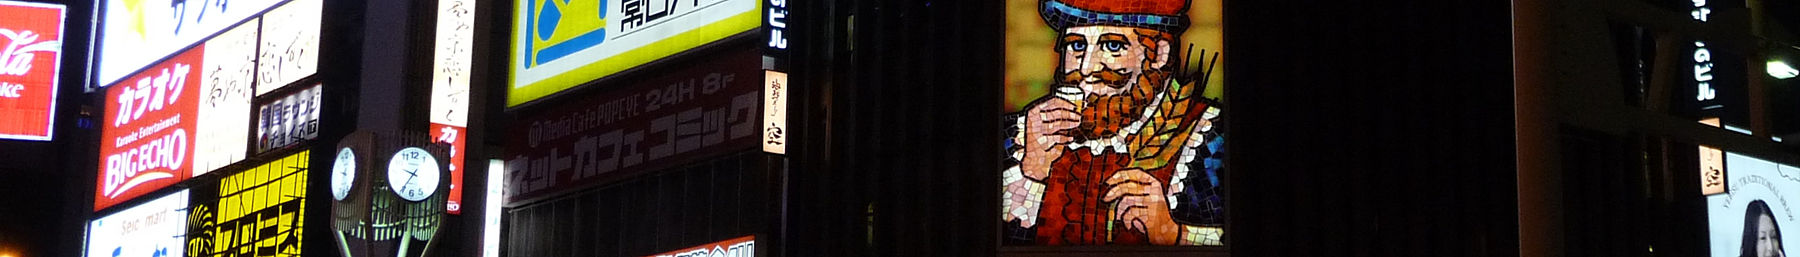 Sapporo banner Susukino district.jpg